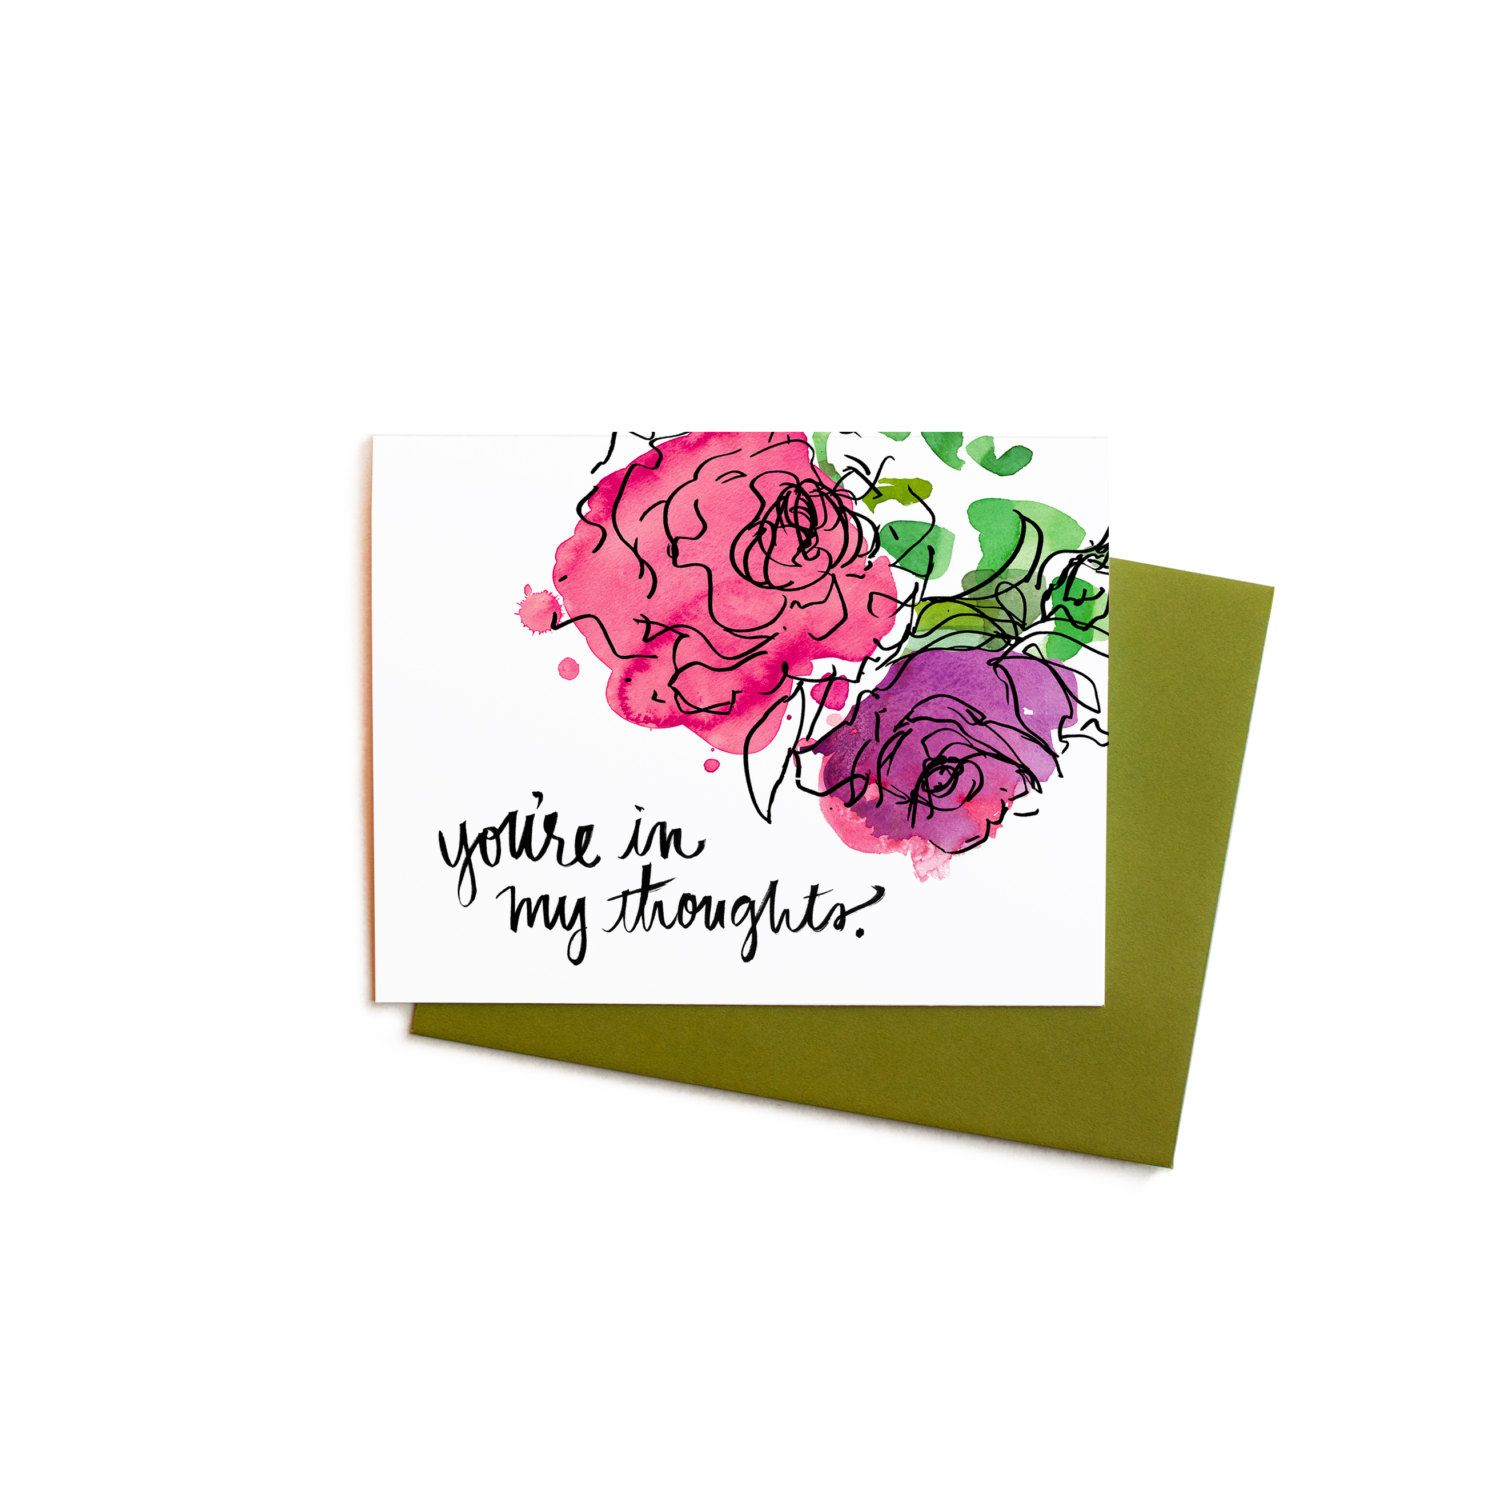 New To Anopensketchbook On Etsy Floral Sympathy Card Watercolor Flowers